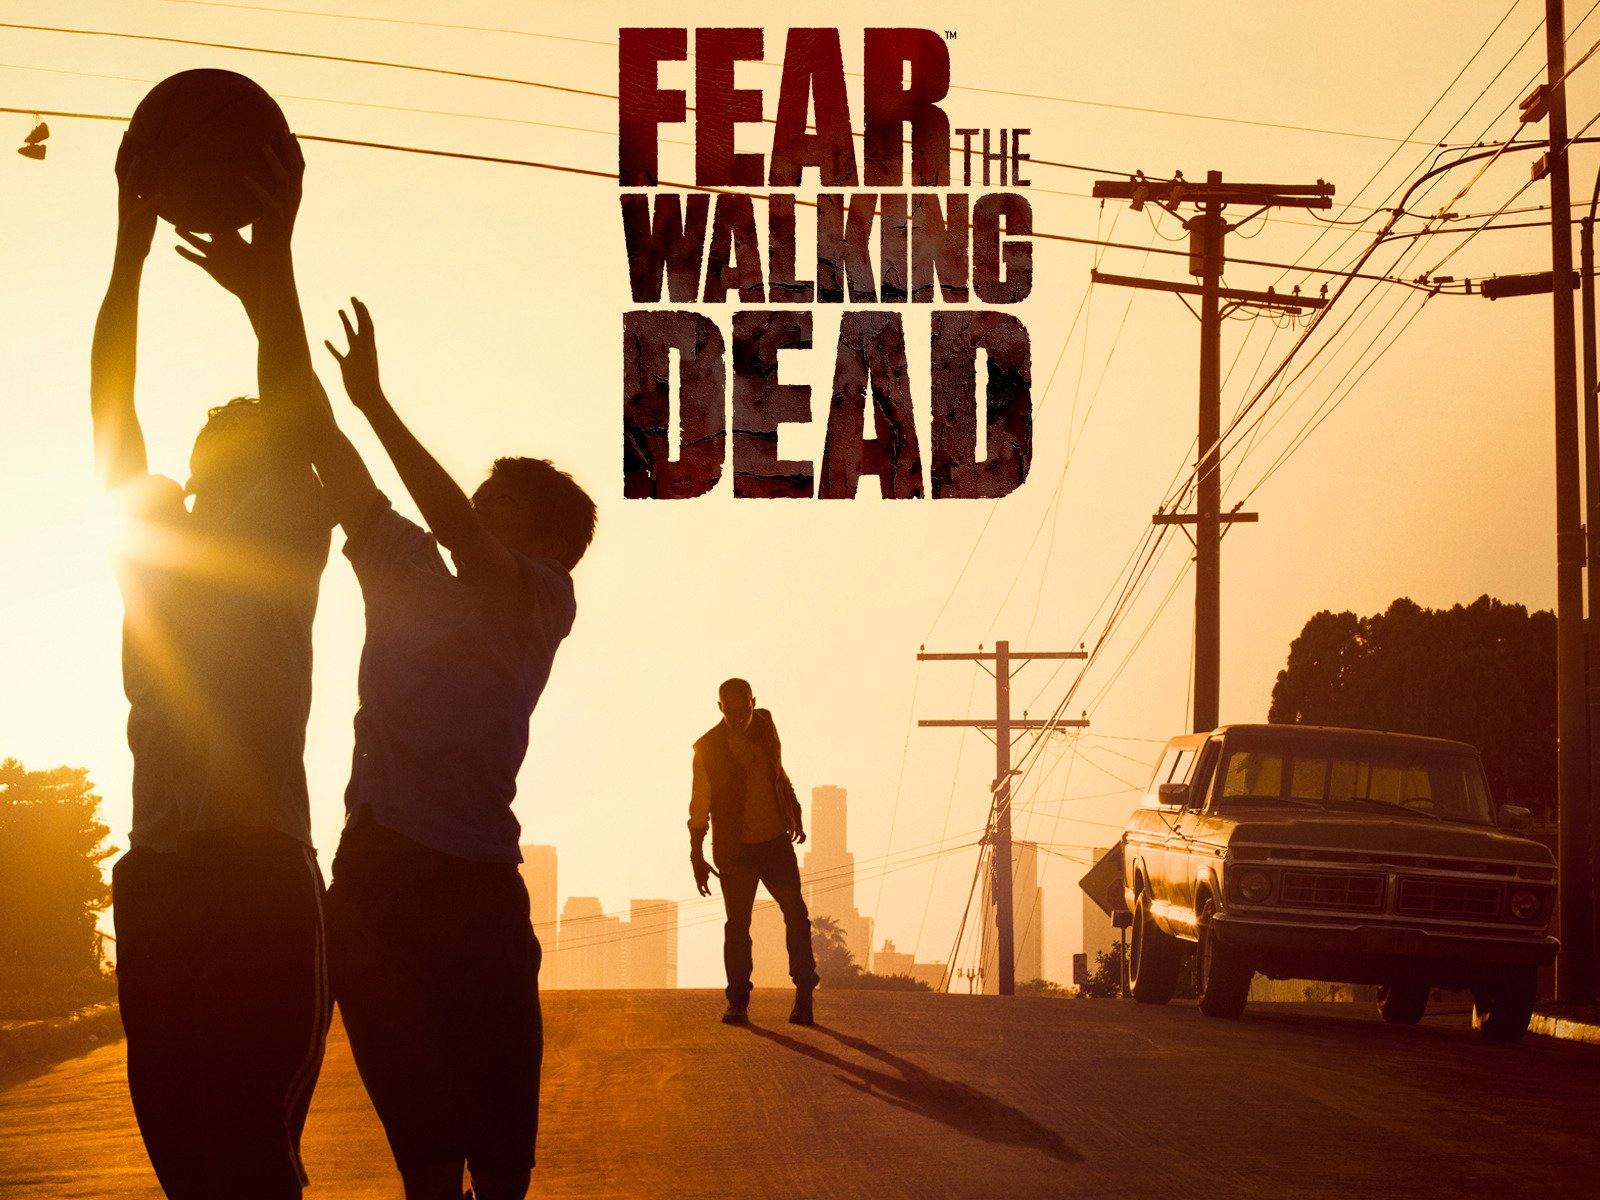 Fear the Walking Dead Season 1 - Season 1